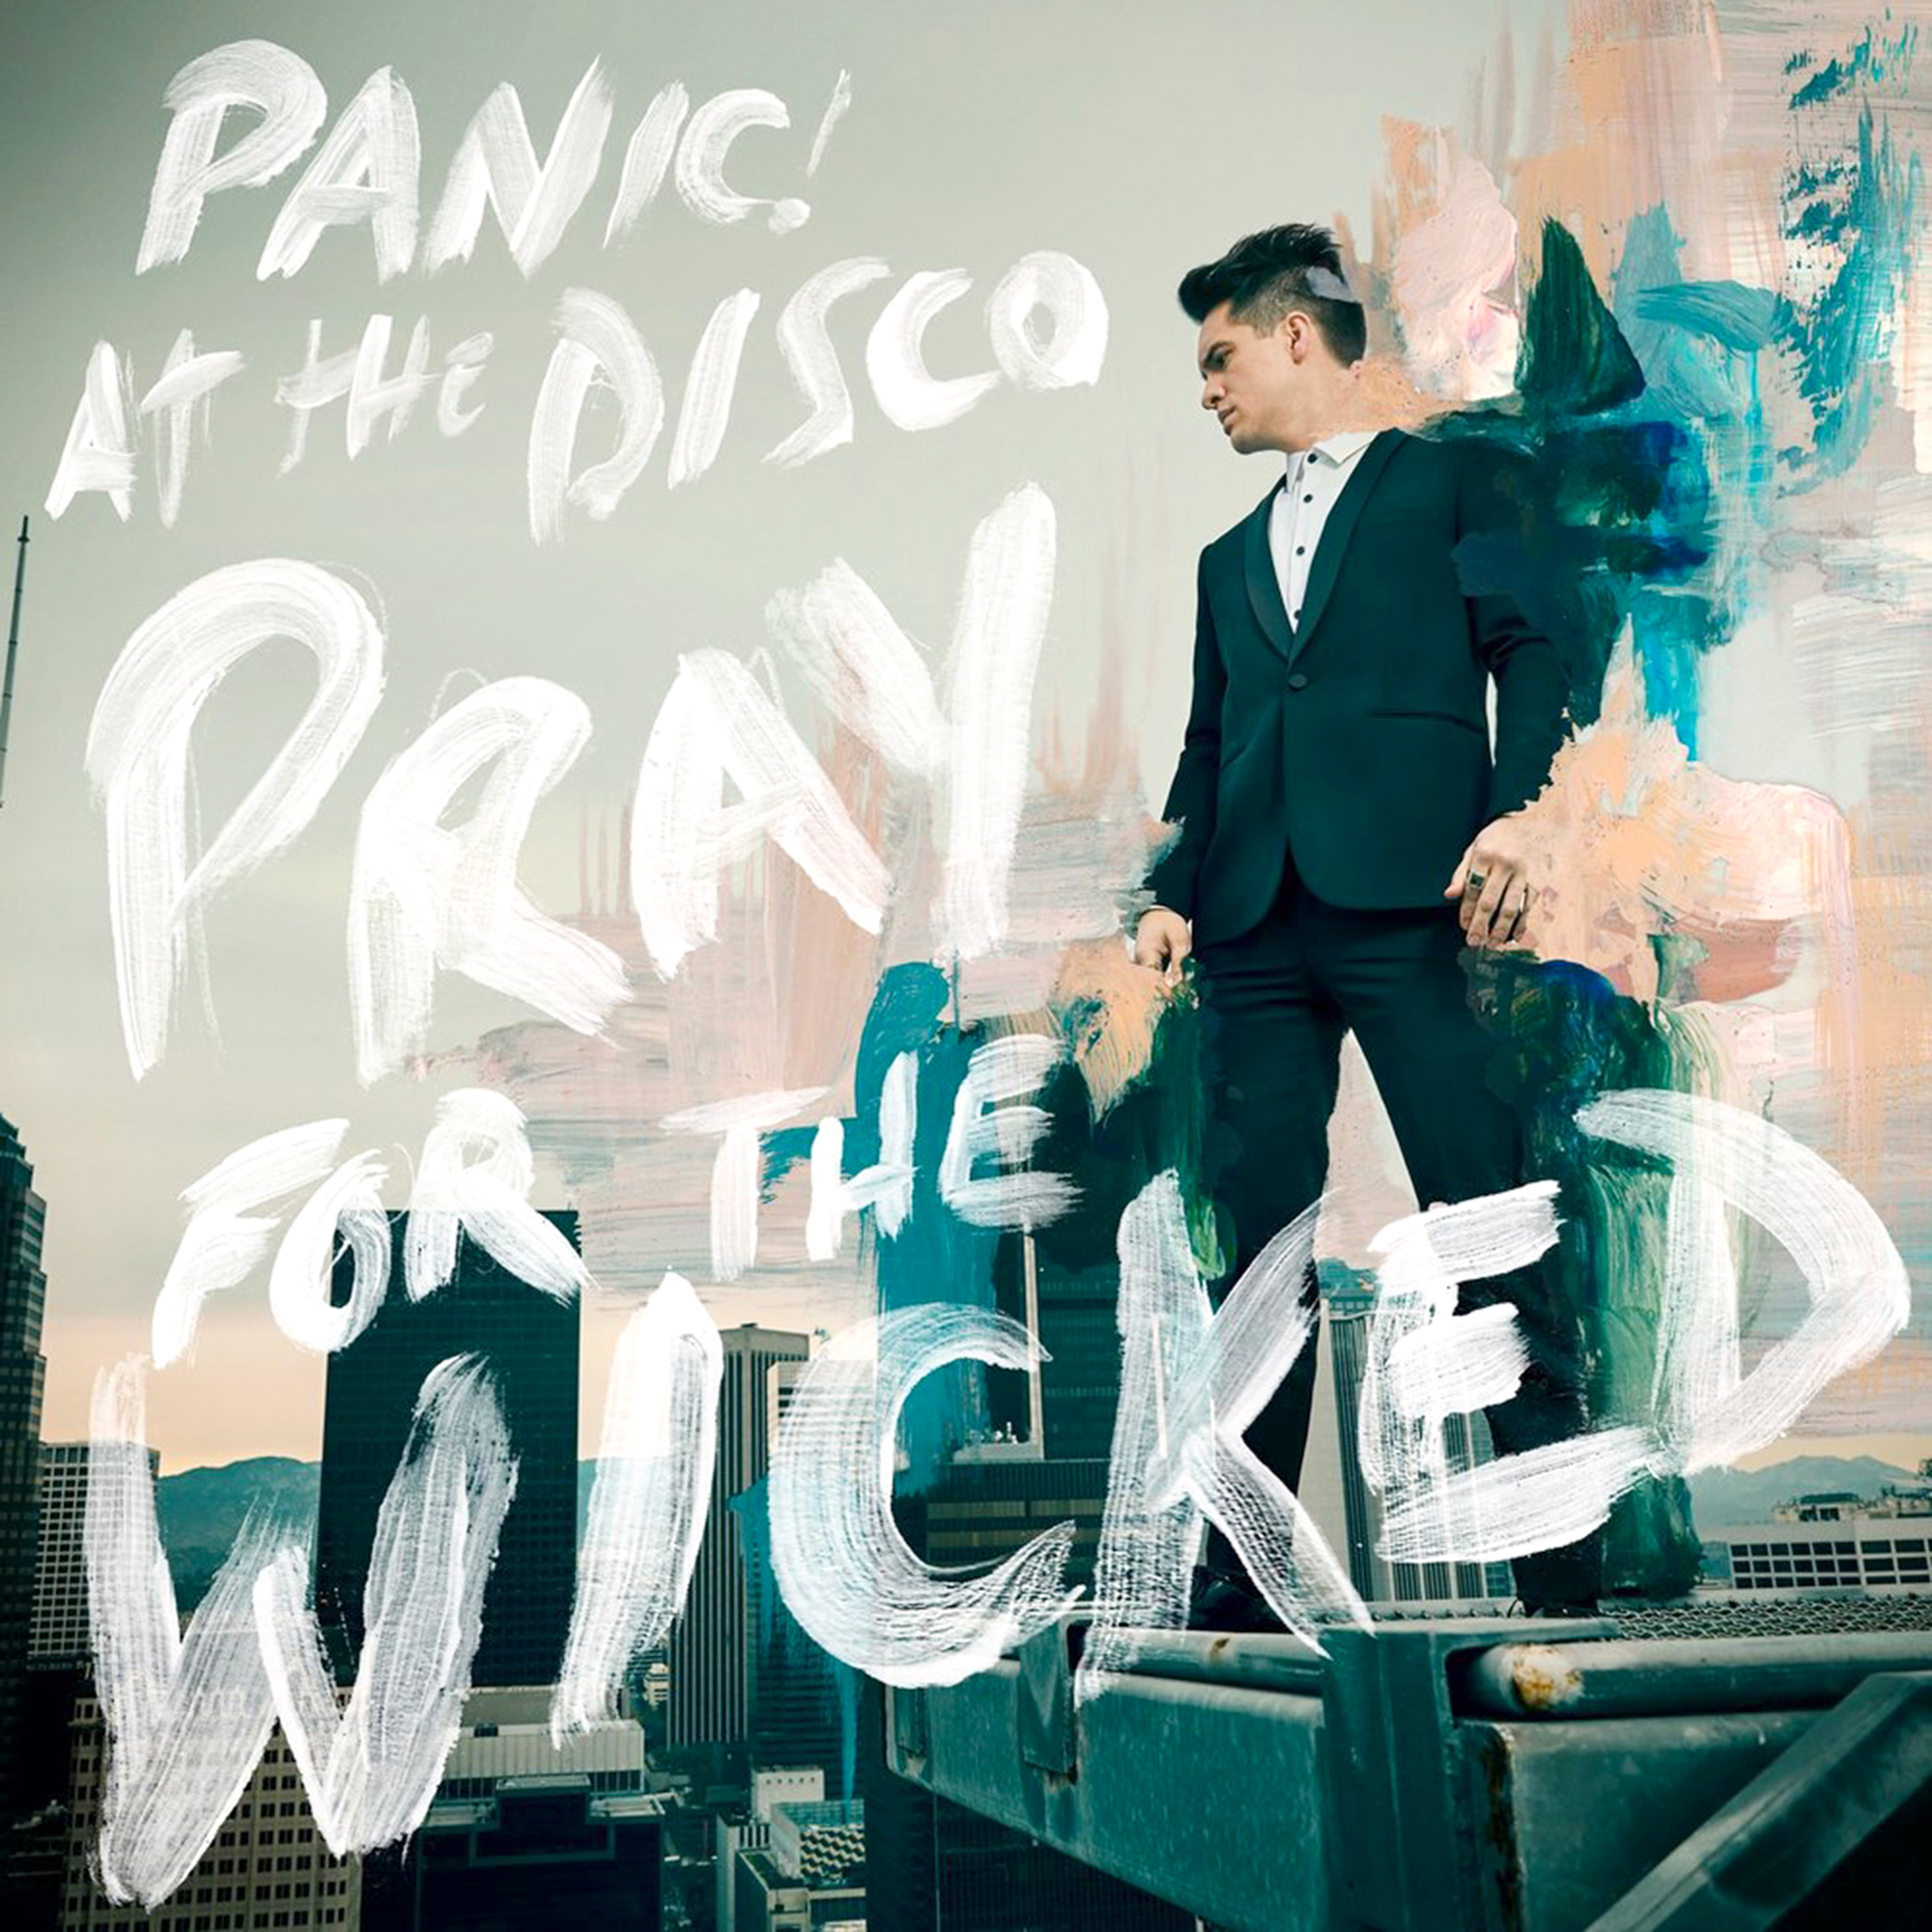 PANIC AT THE DISCOPray For The Wicken2018